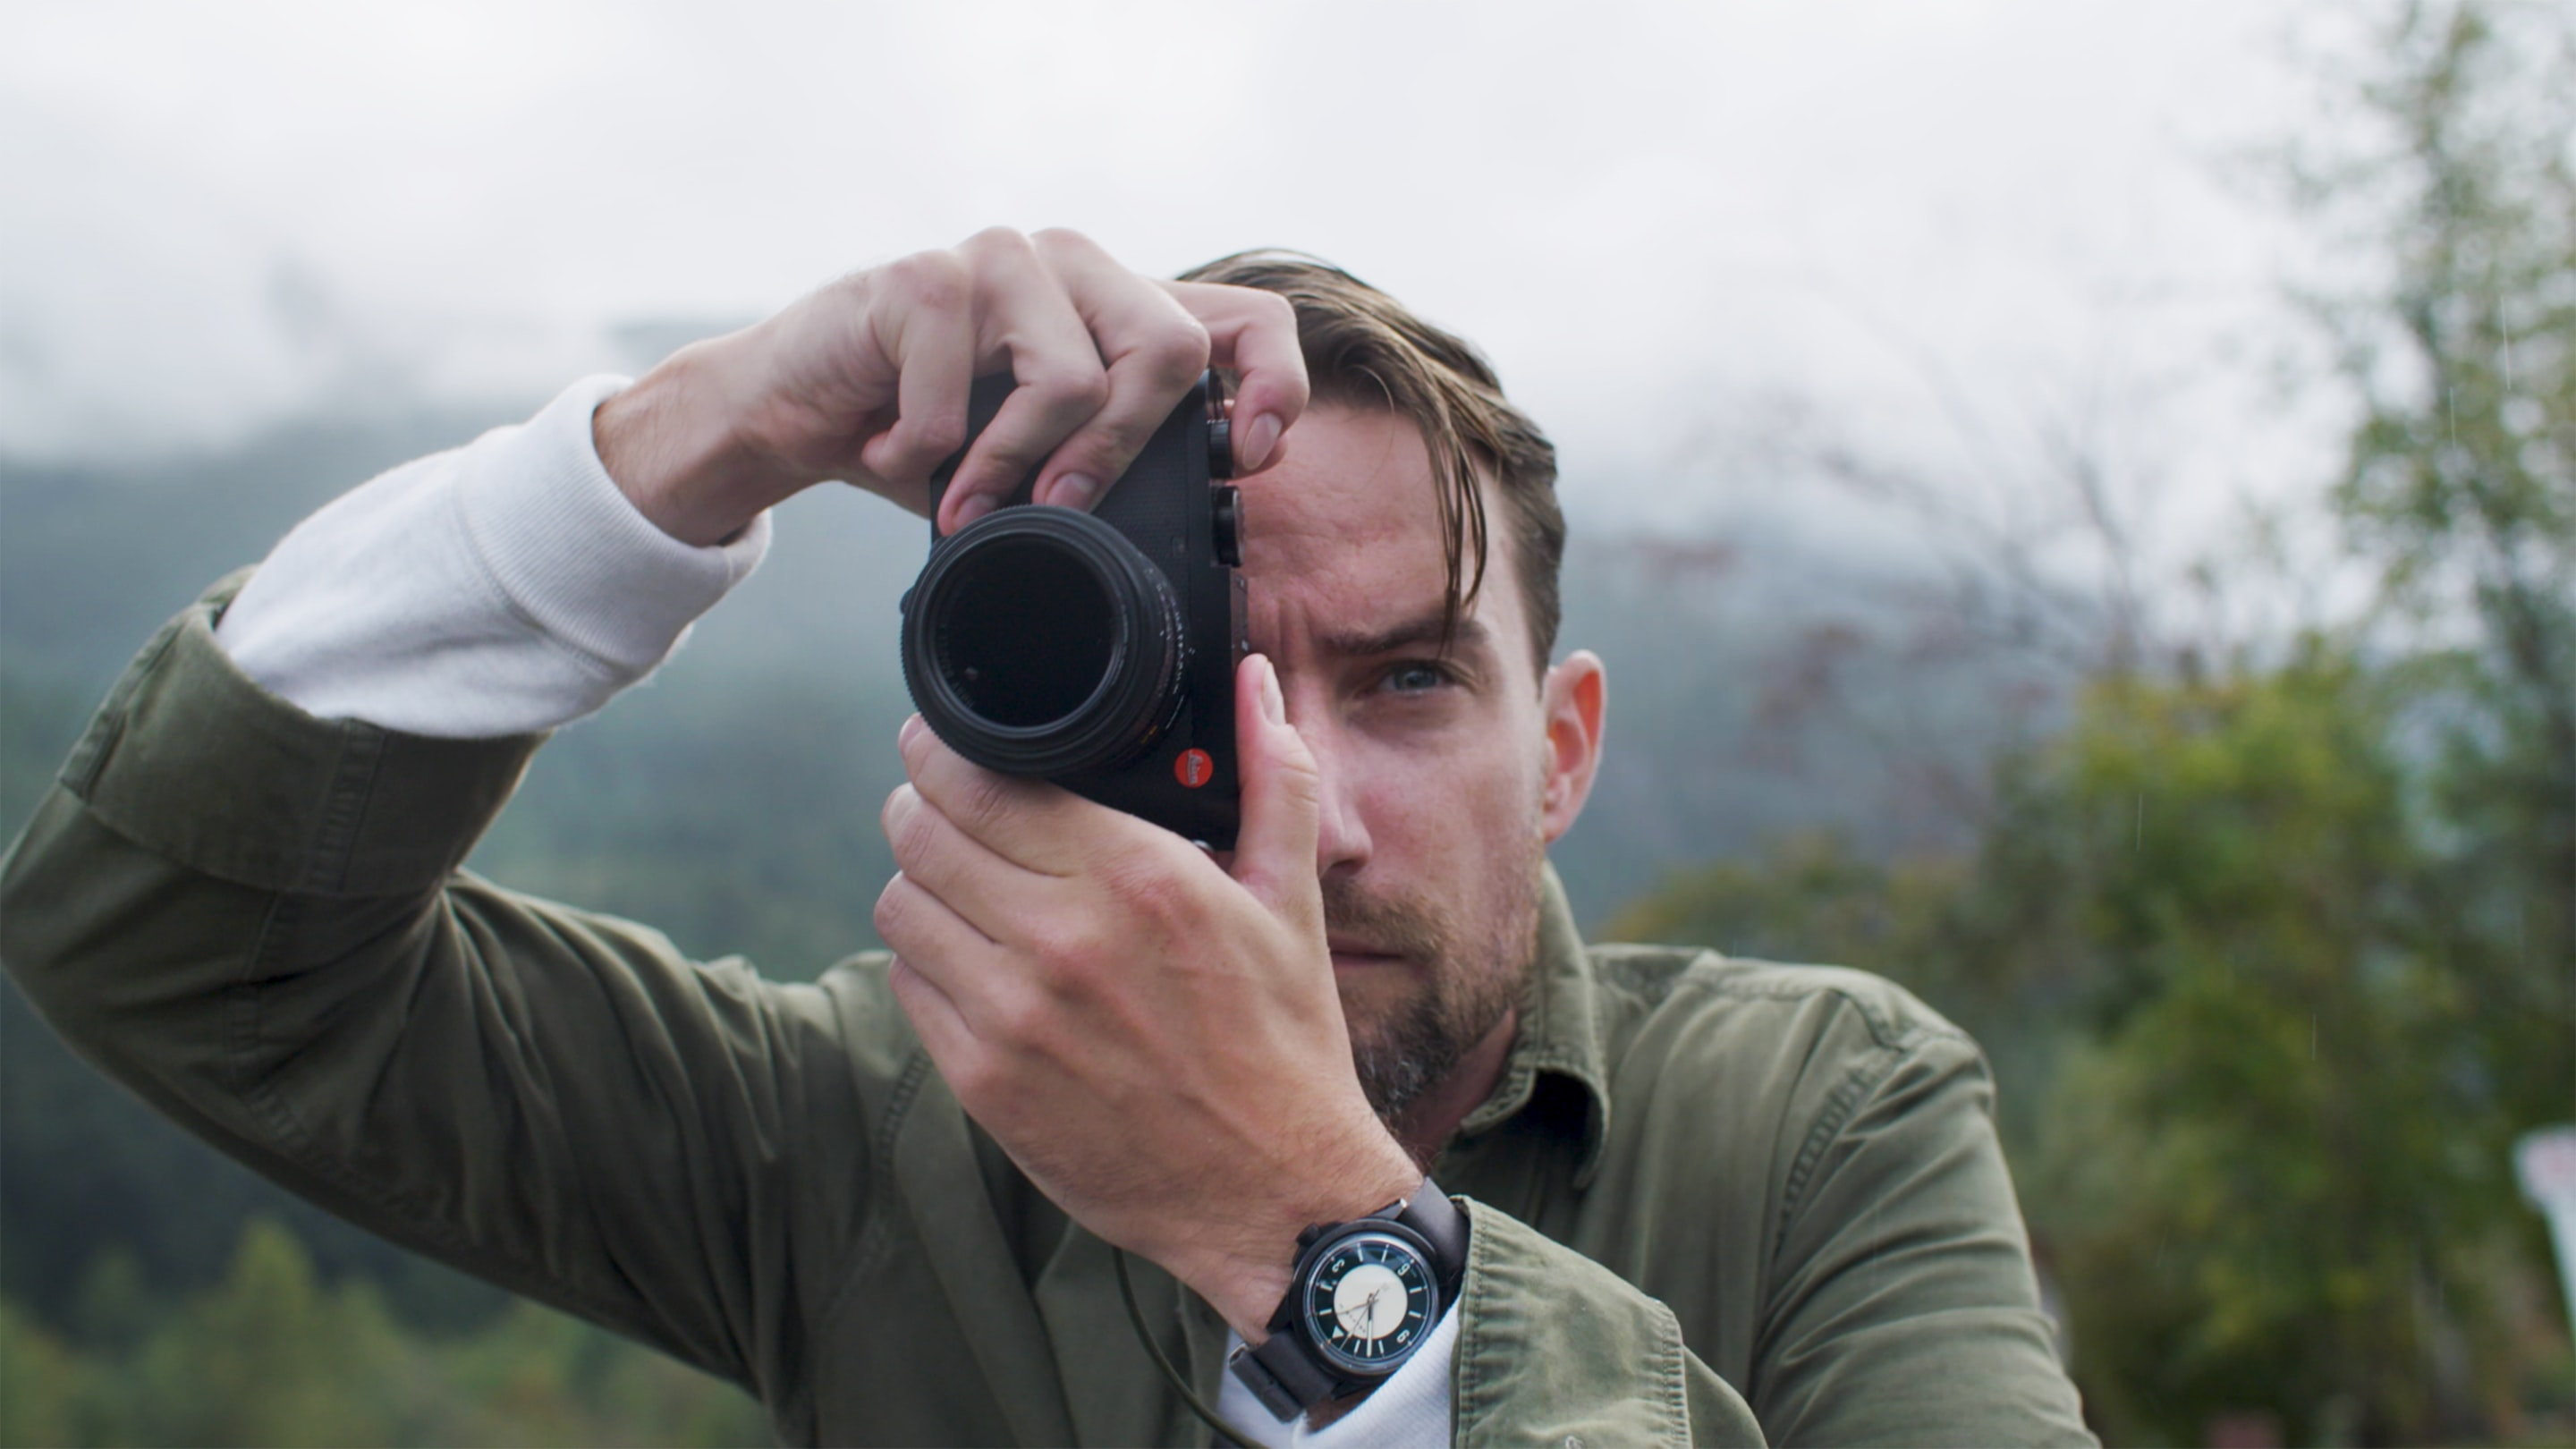 In Partnership - My Leica: James Stacey